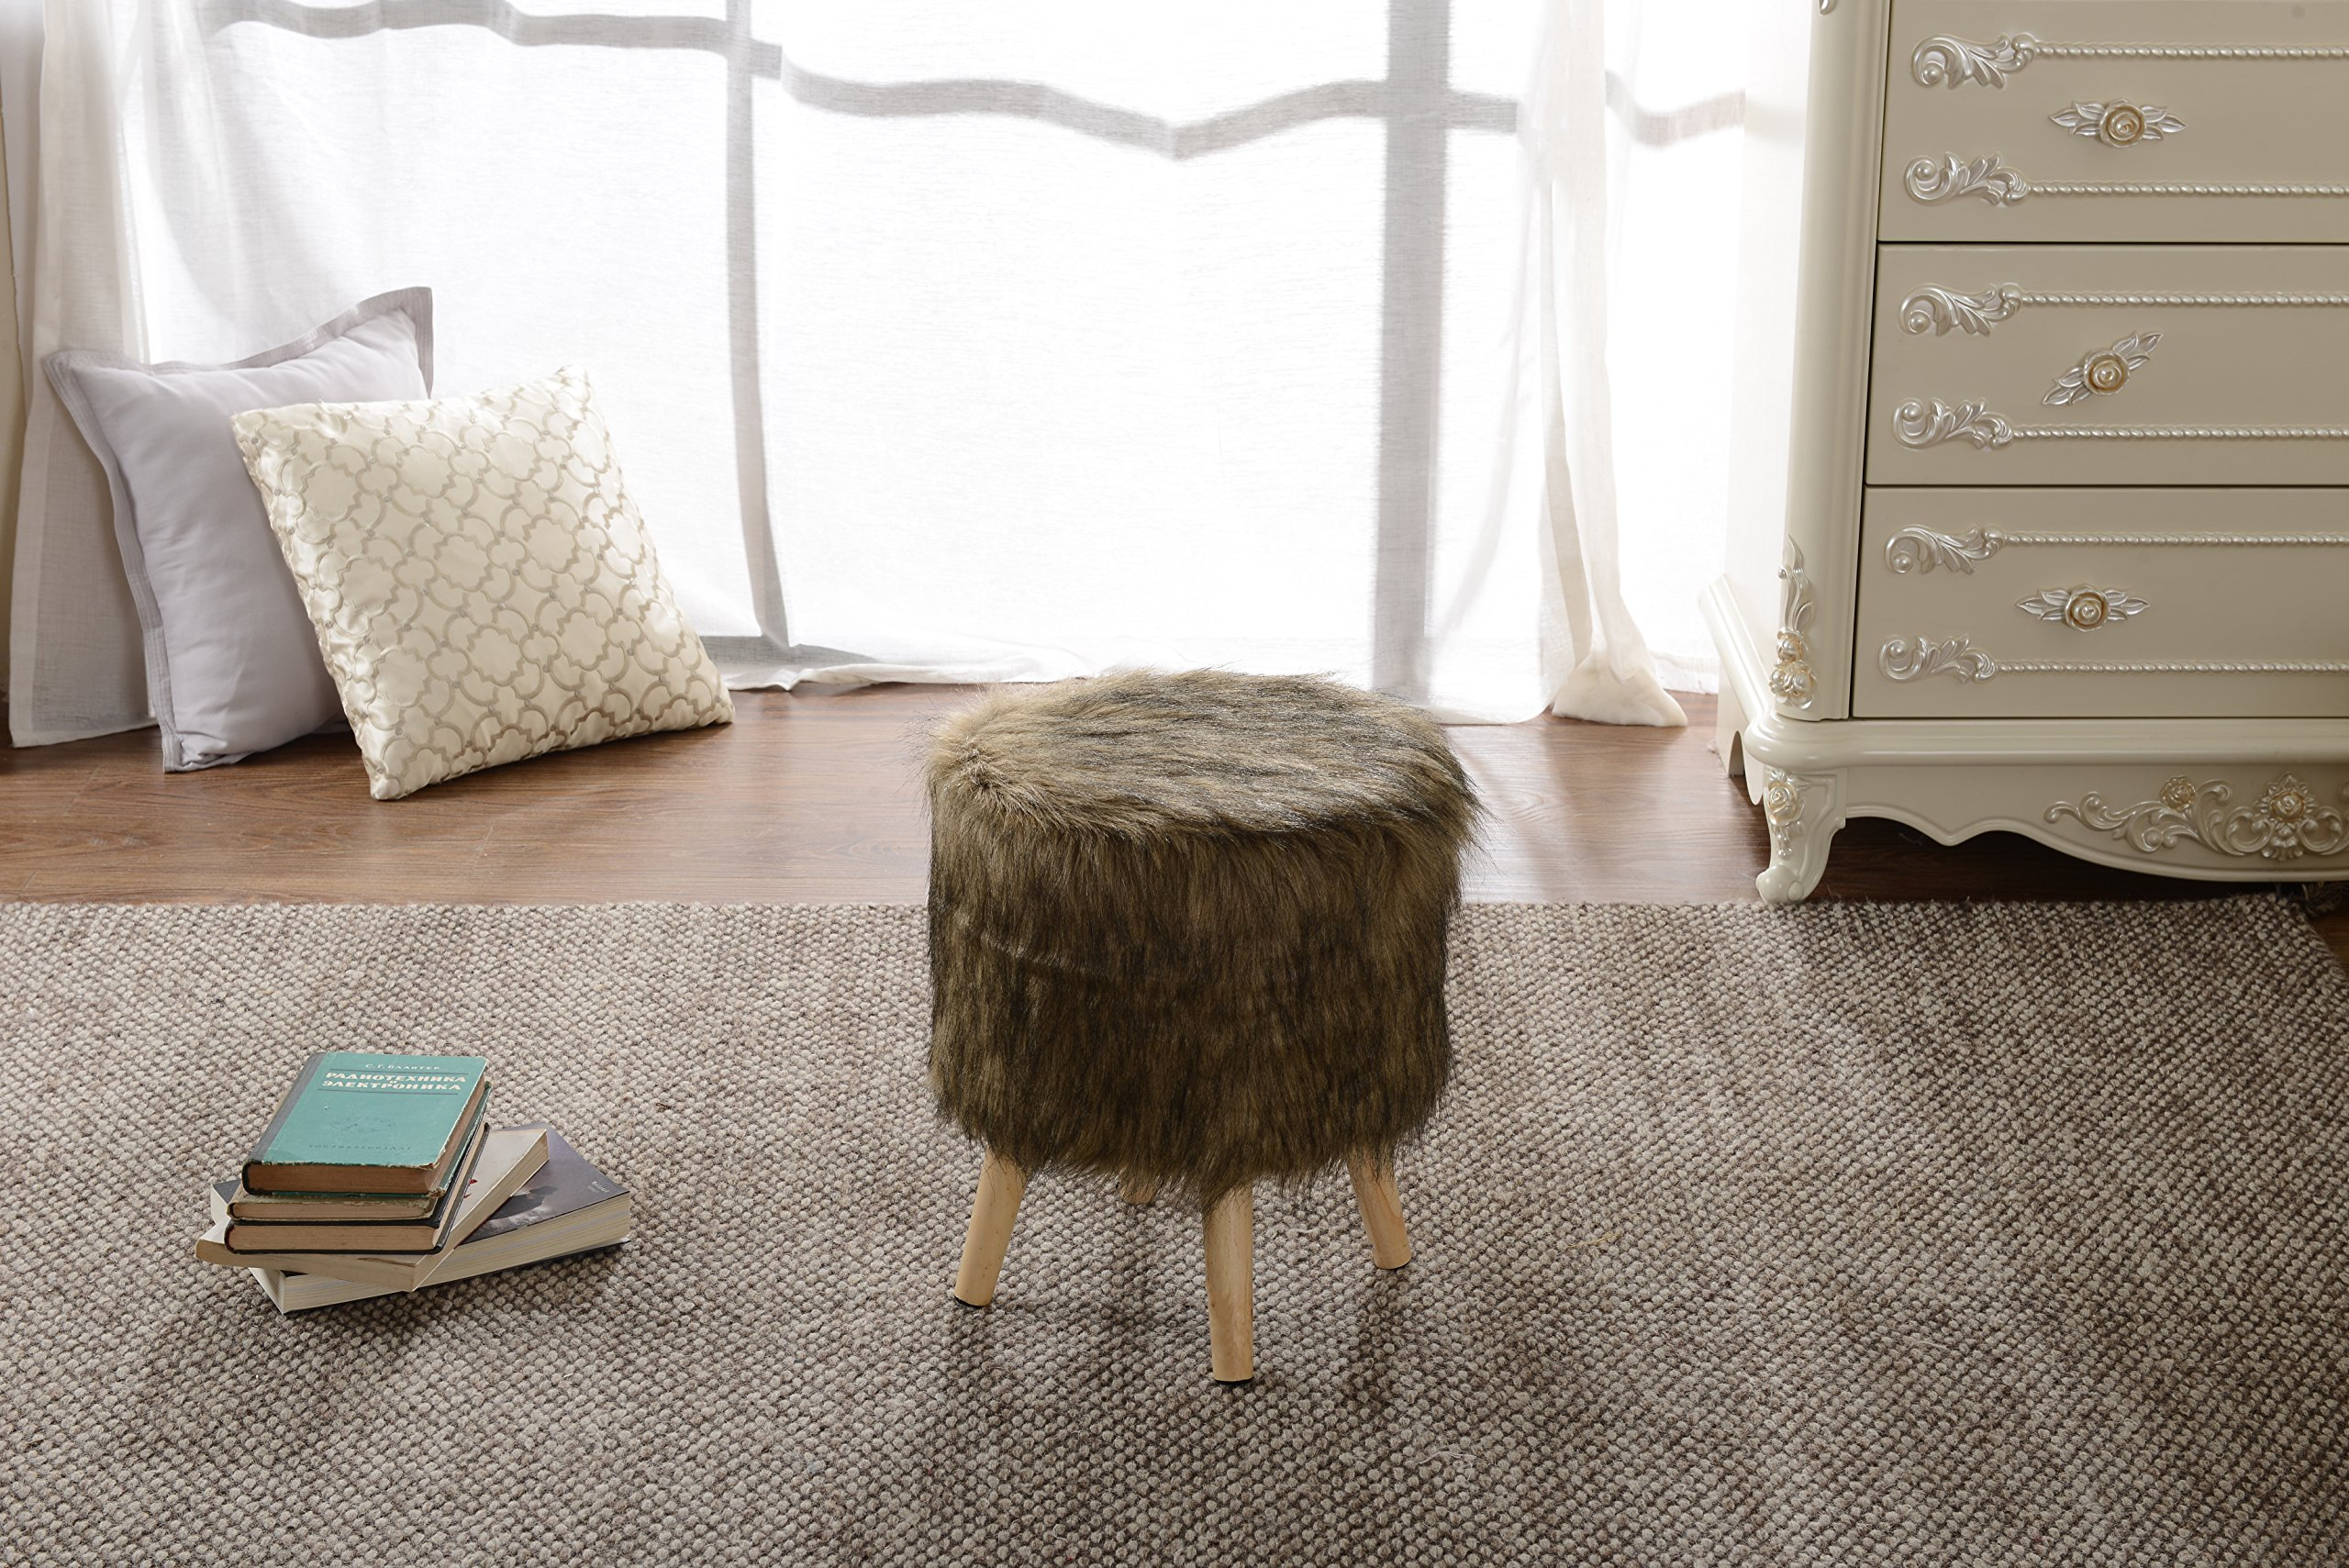 Cheer Collection 13'' Round Ottoman | Super Soft Decorative Brown Mink Faux Fur Foot Stool with Wood Legs by Cheer Collection (Image #5)